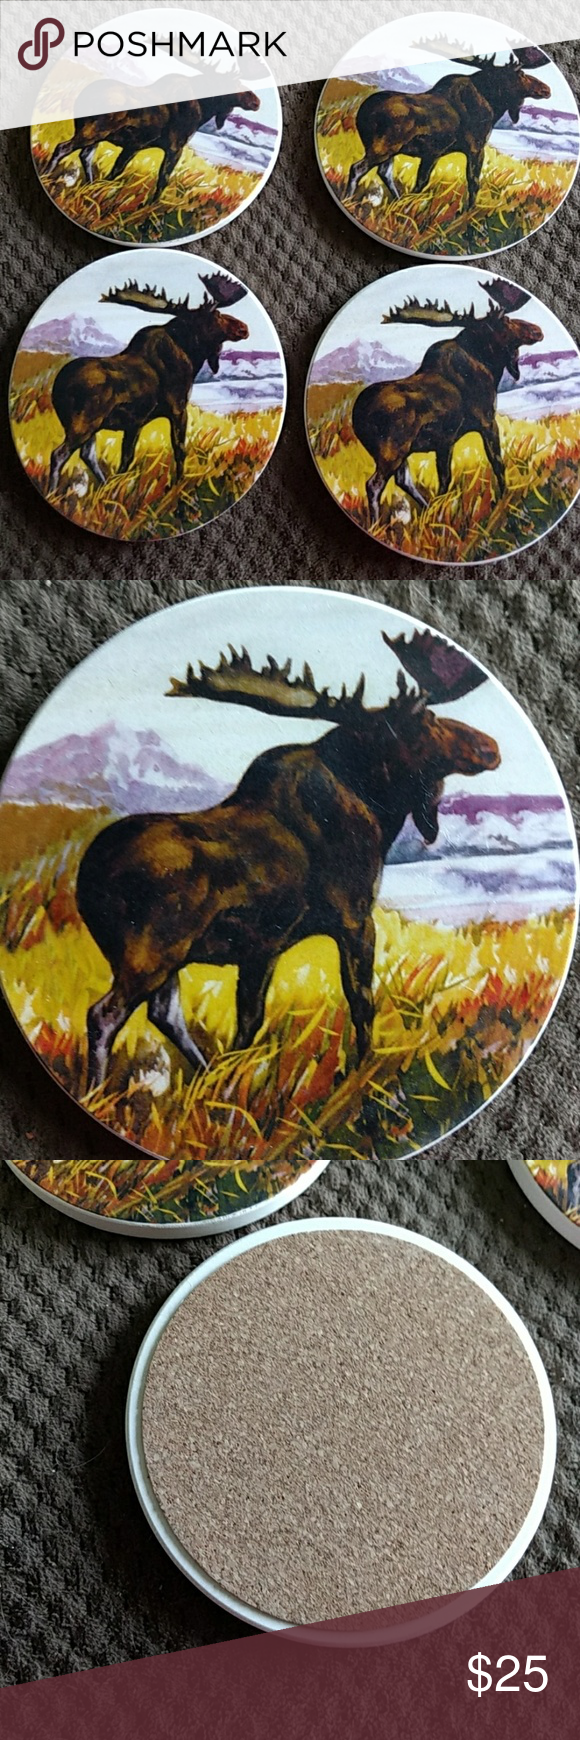 NIB Set of 4 Stone Coasters Moose design is same on all coasters . Coors are brown, purple, yellow, green & blue. Nice gift still in box. One set of 4. COUNTER ART Other